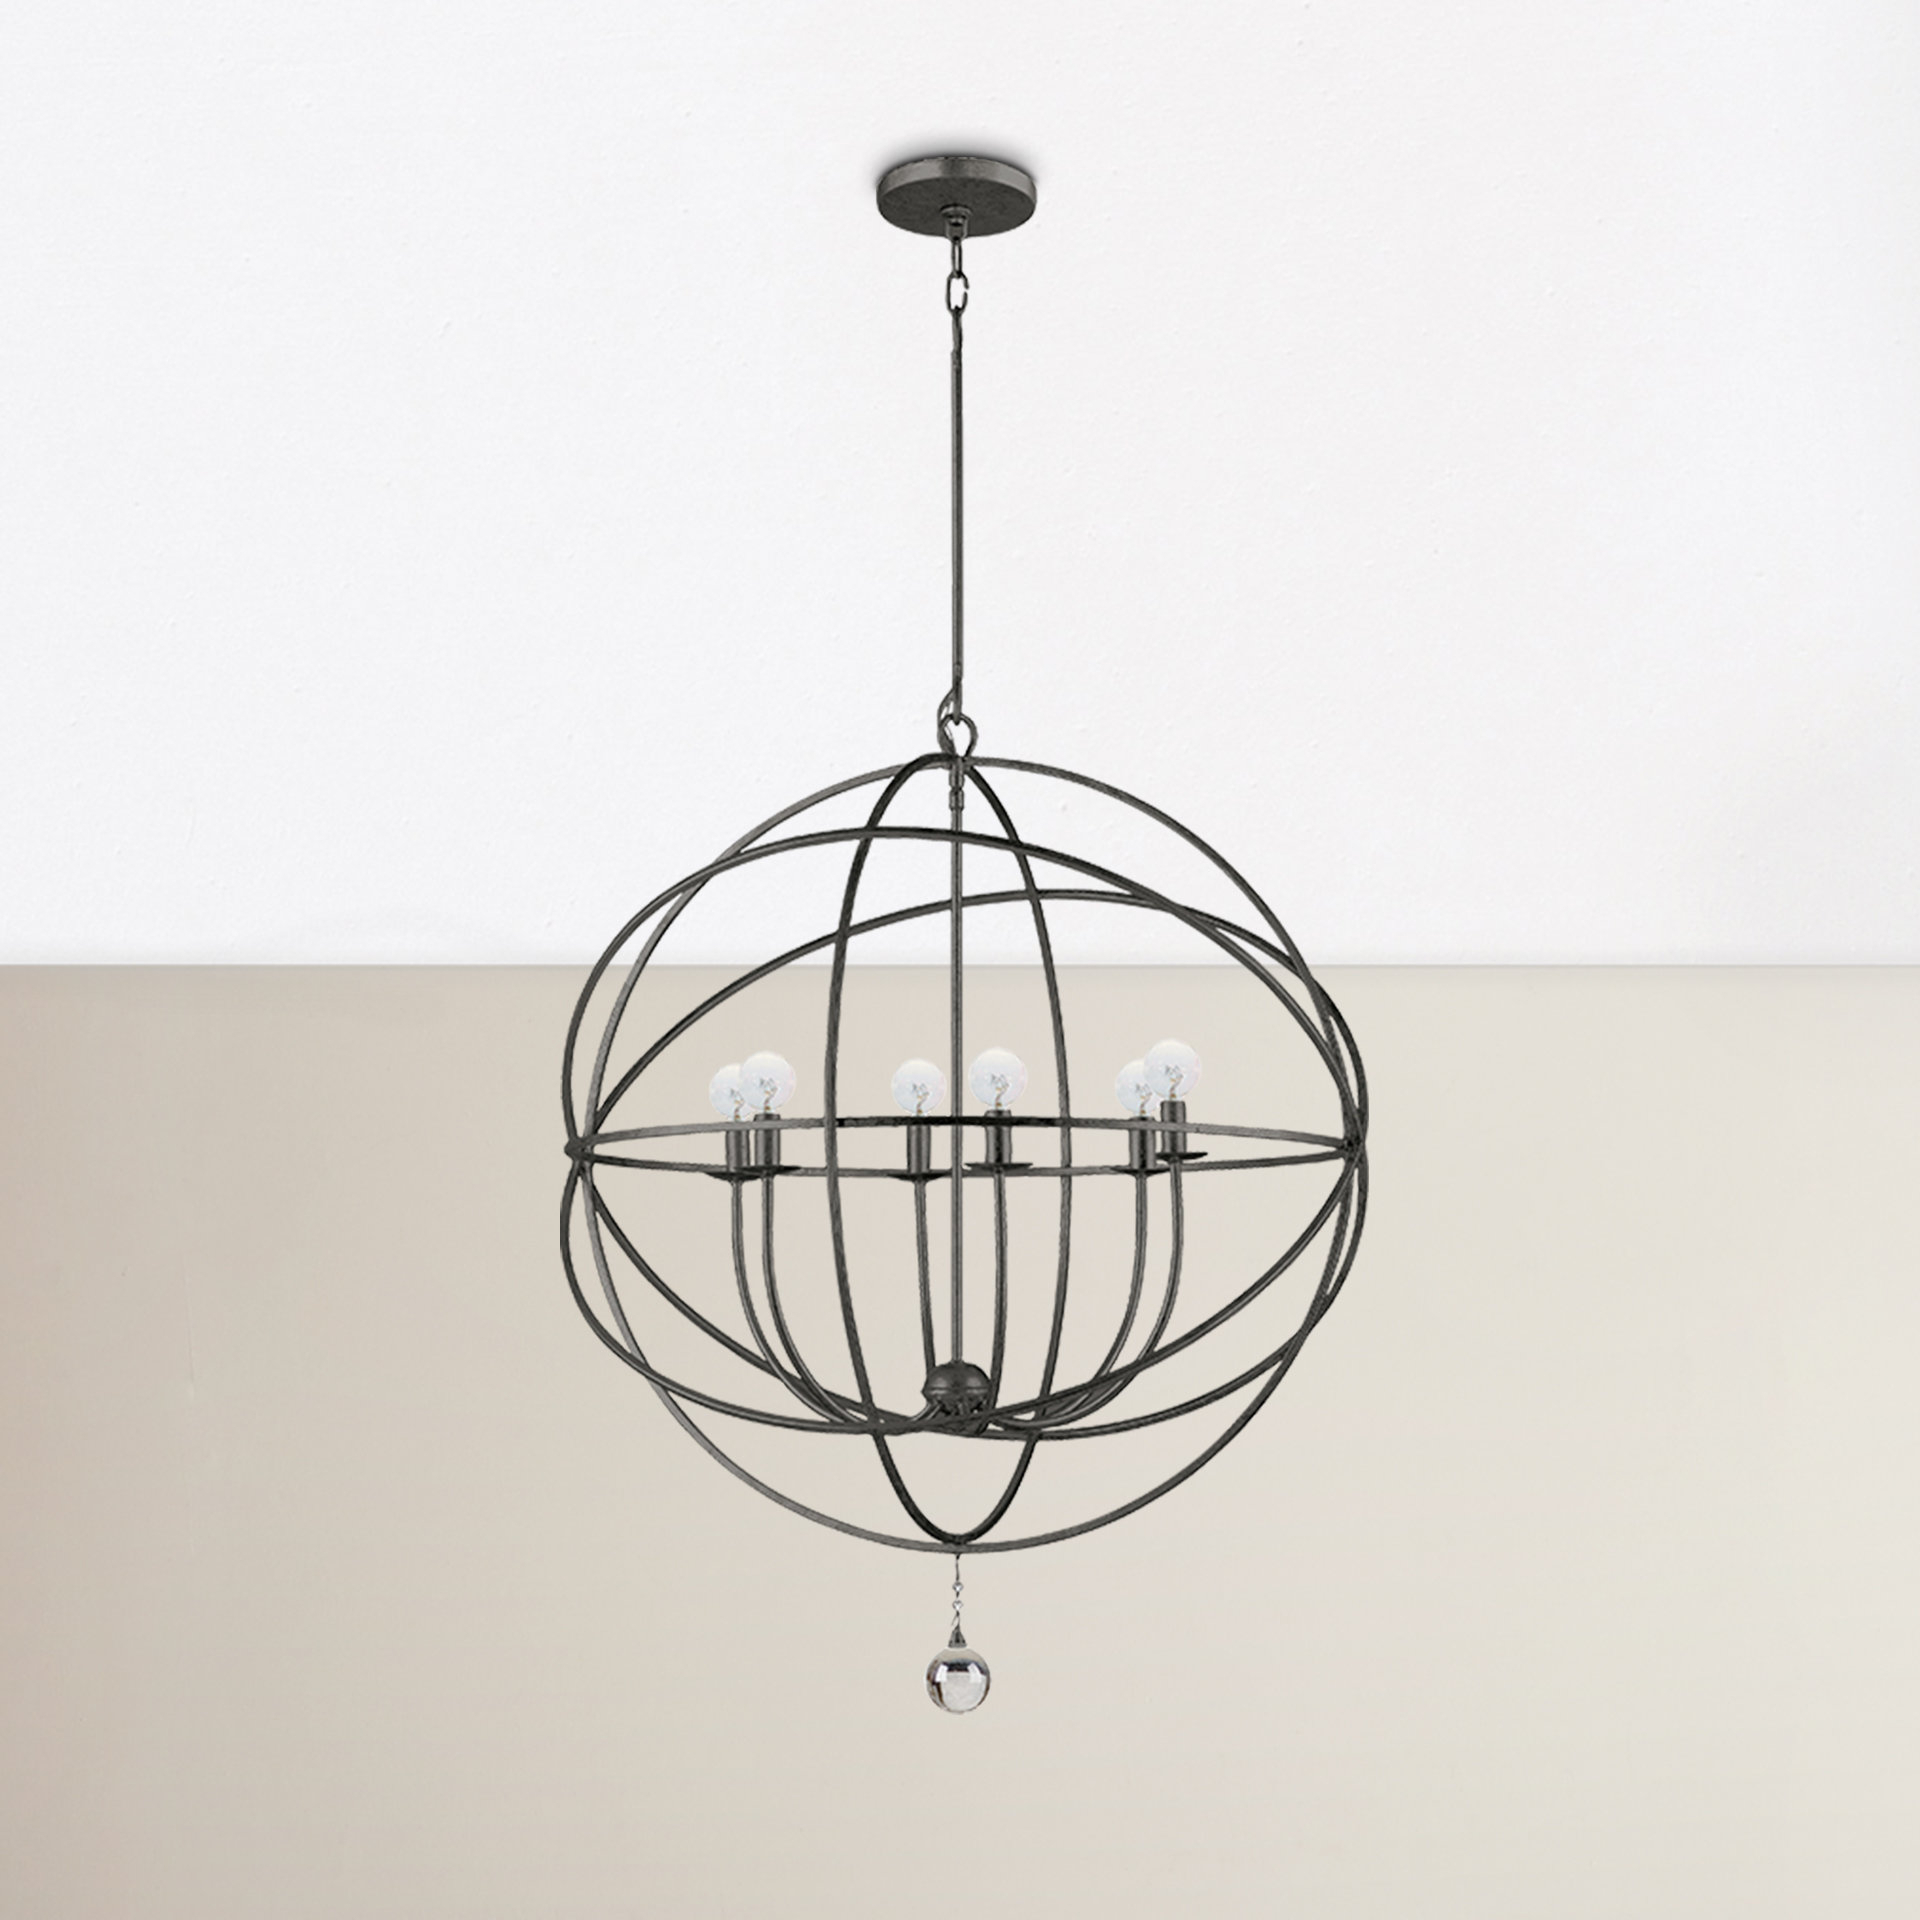 Willa Arlo Interiors Gregoire 6 Light Globe Chandelier Regarding Gregoire 6 Light Globe Chandeliers (View 6 of 30)